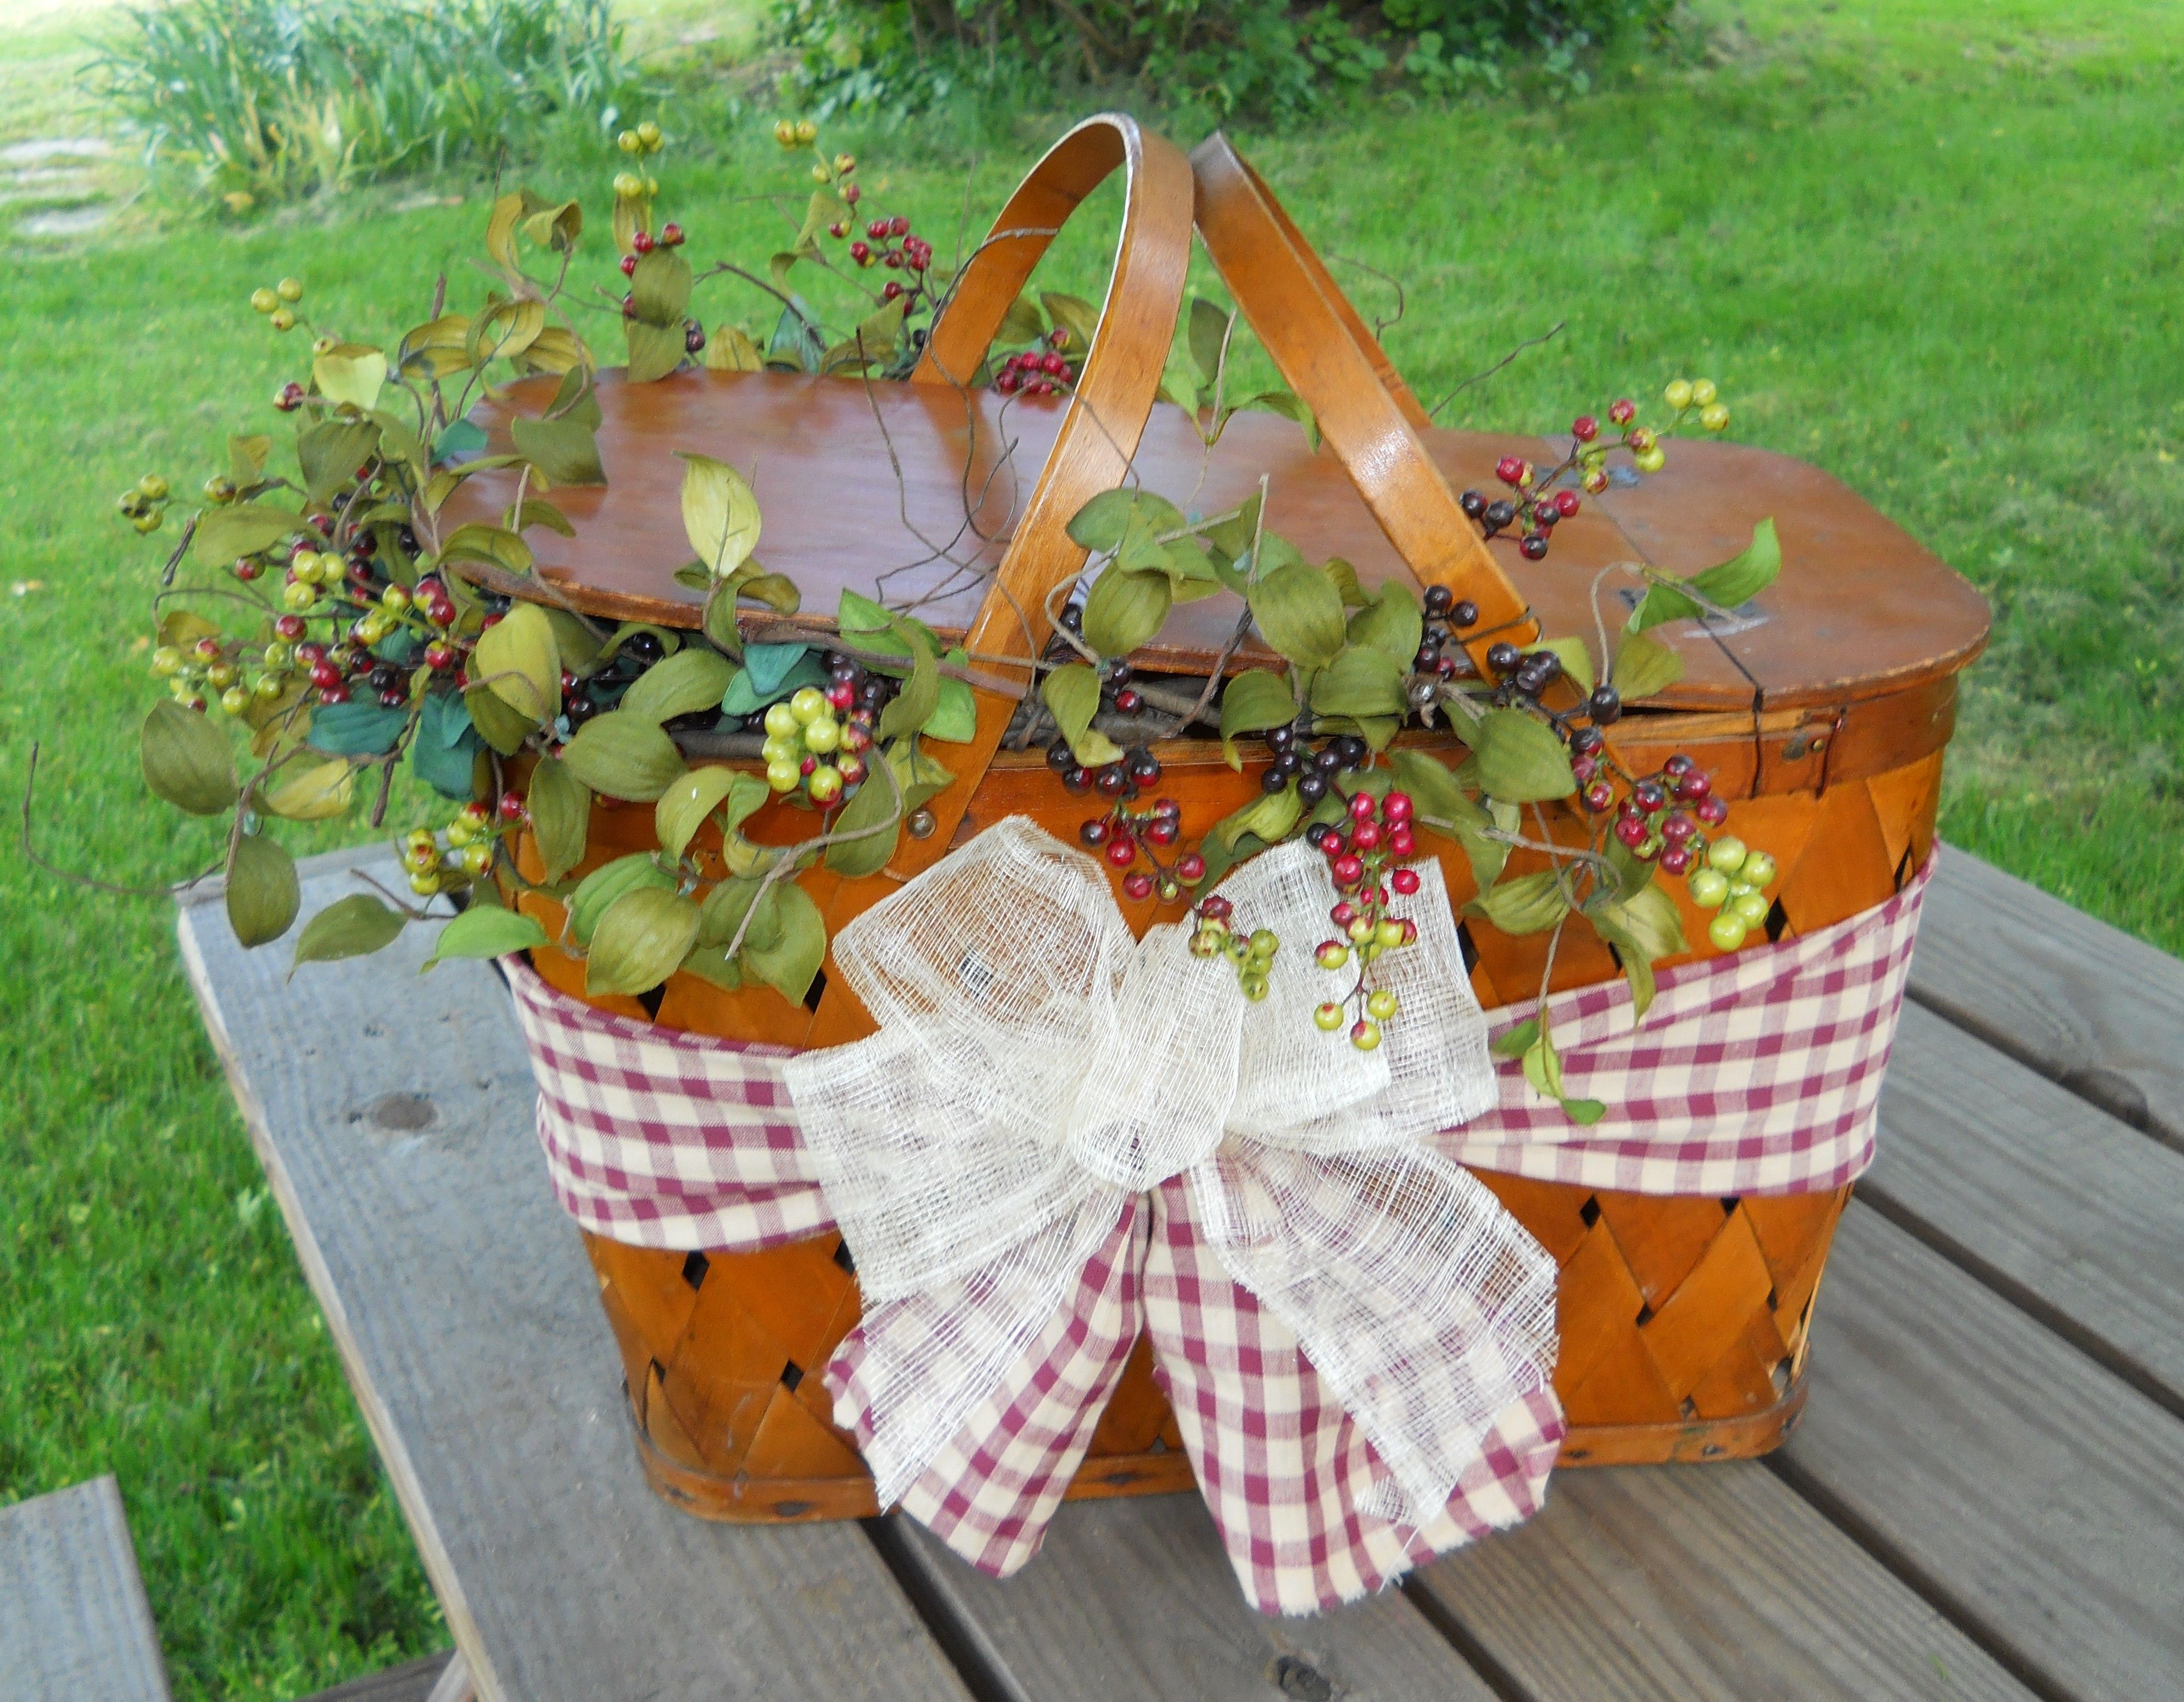 Decorated picnic basket by country craft house for Country craft house